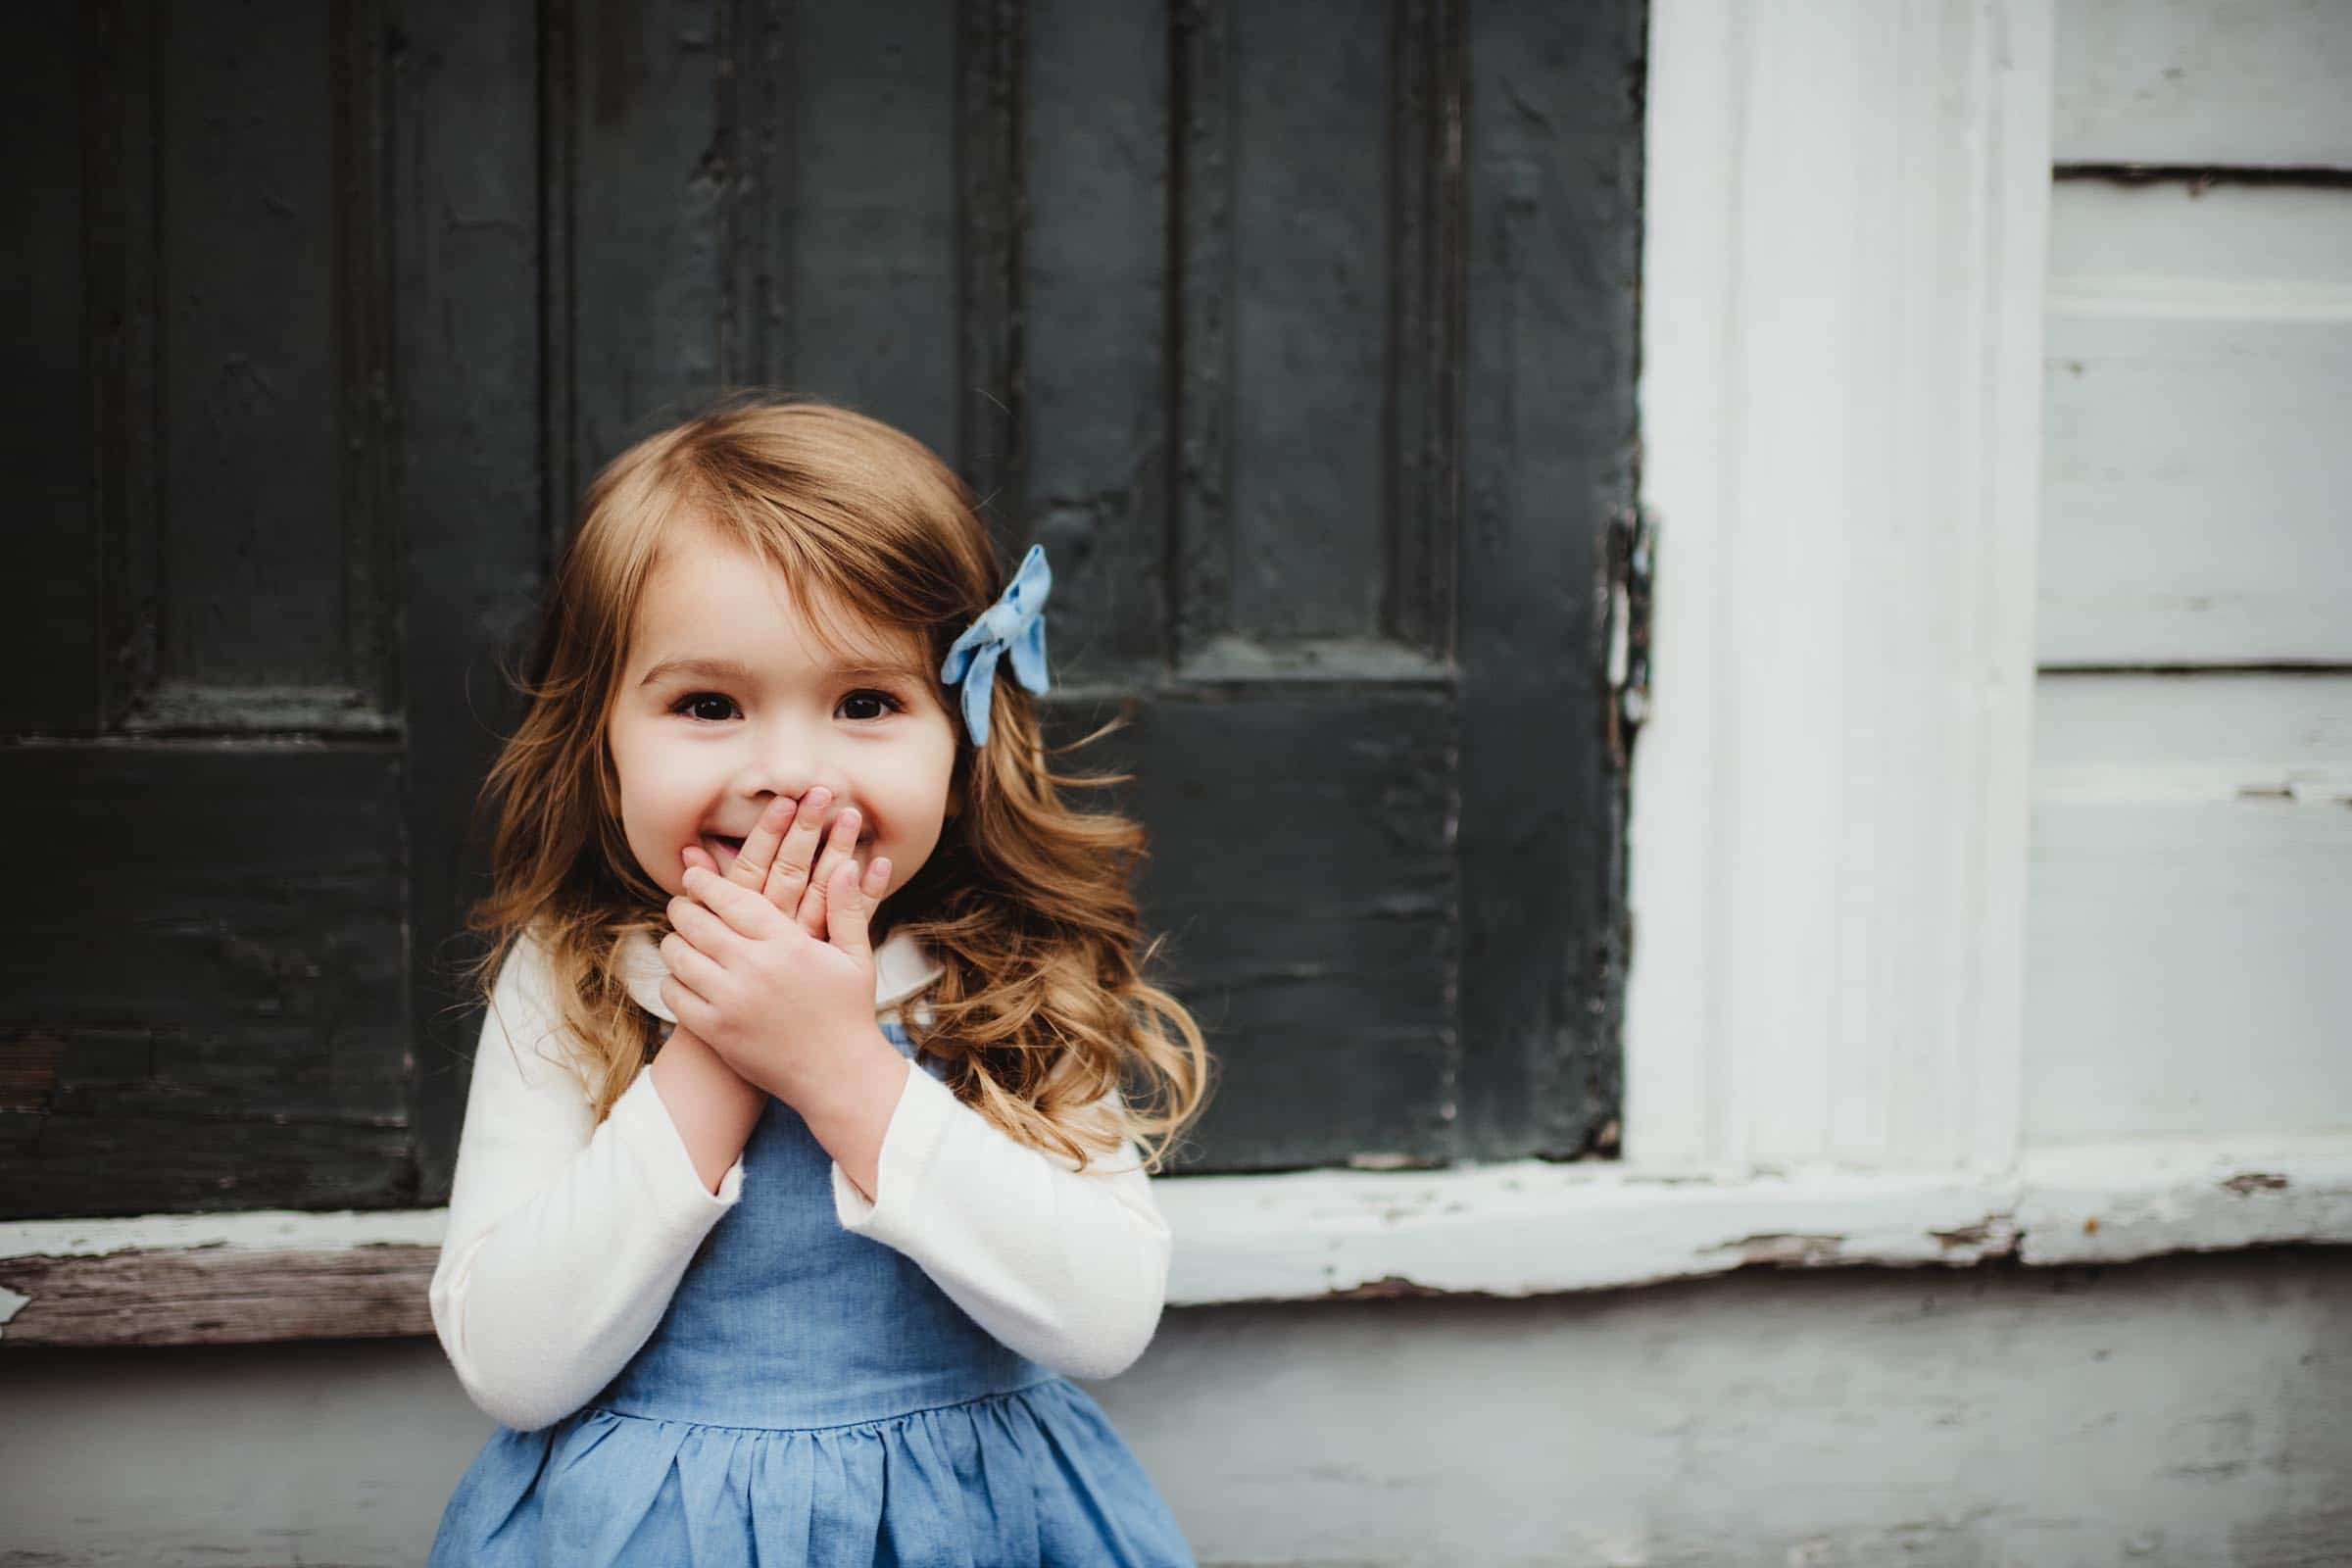 Little Girl Laughing Hands on Mouth